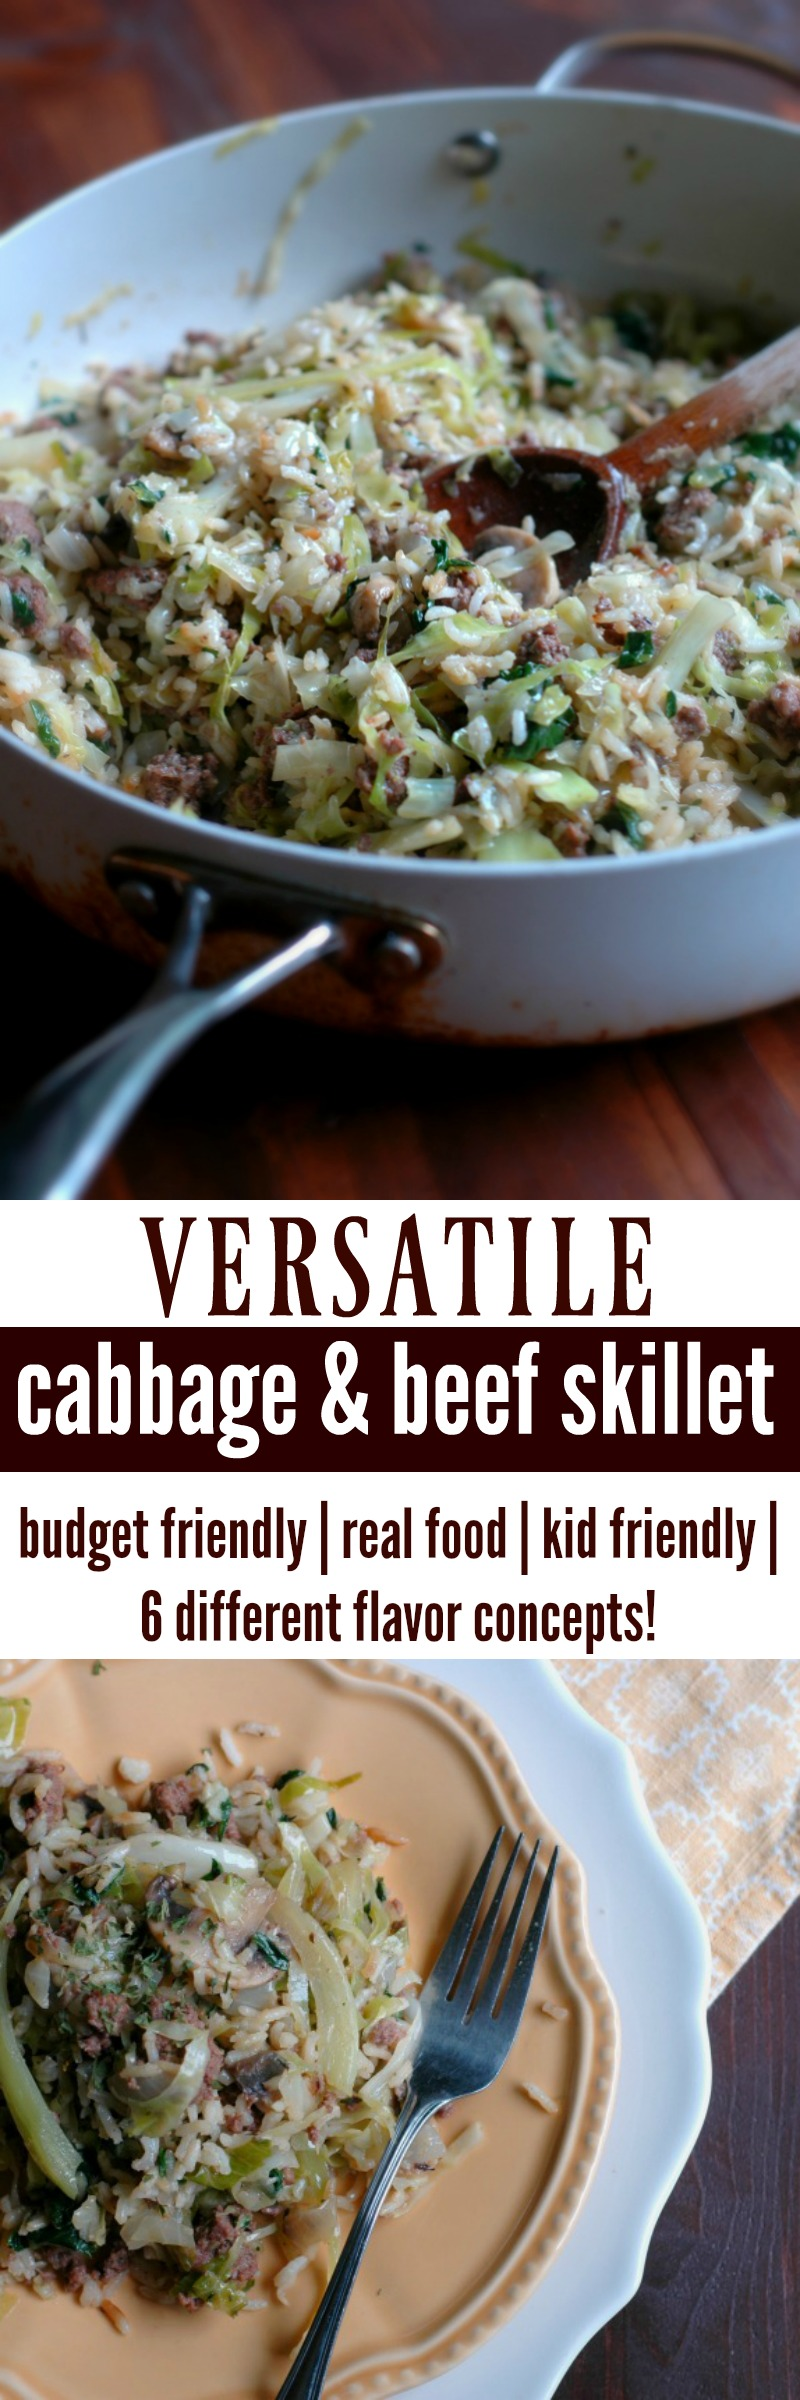 Versatile Cabbage & Beef Skillet :: Budget friendly, real food for the whole family, and with plenty flavor change ups, there's plenty of variety to serve it every week!